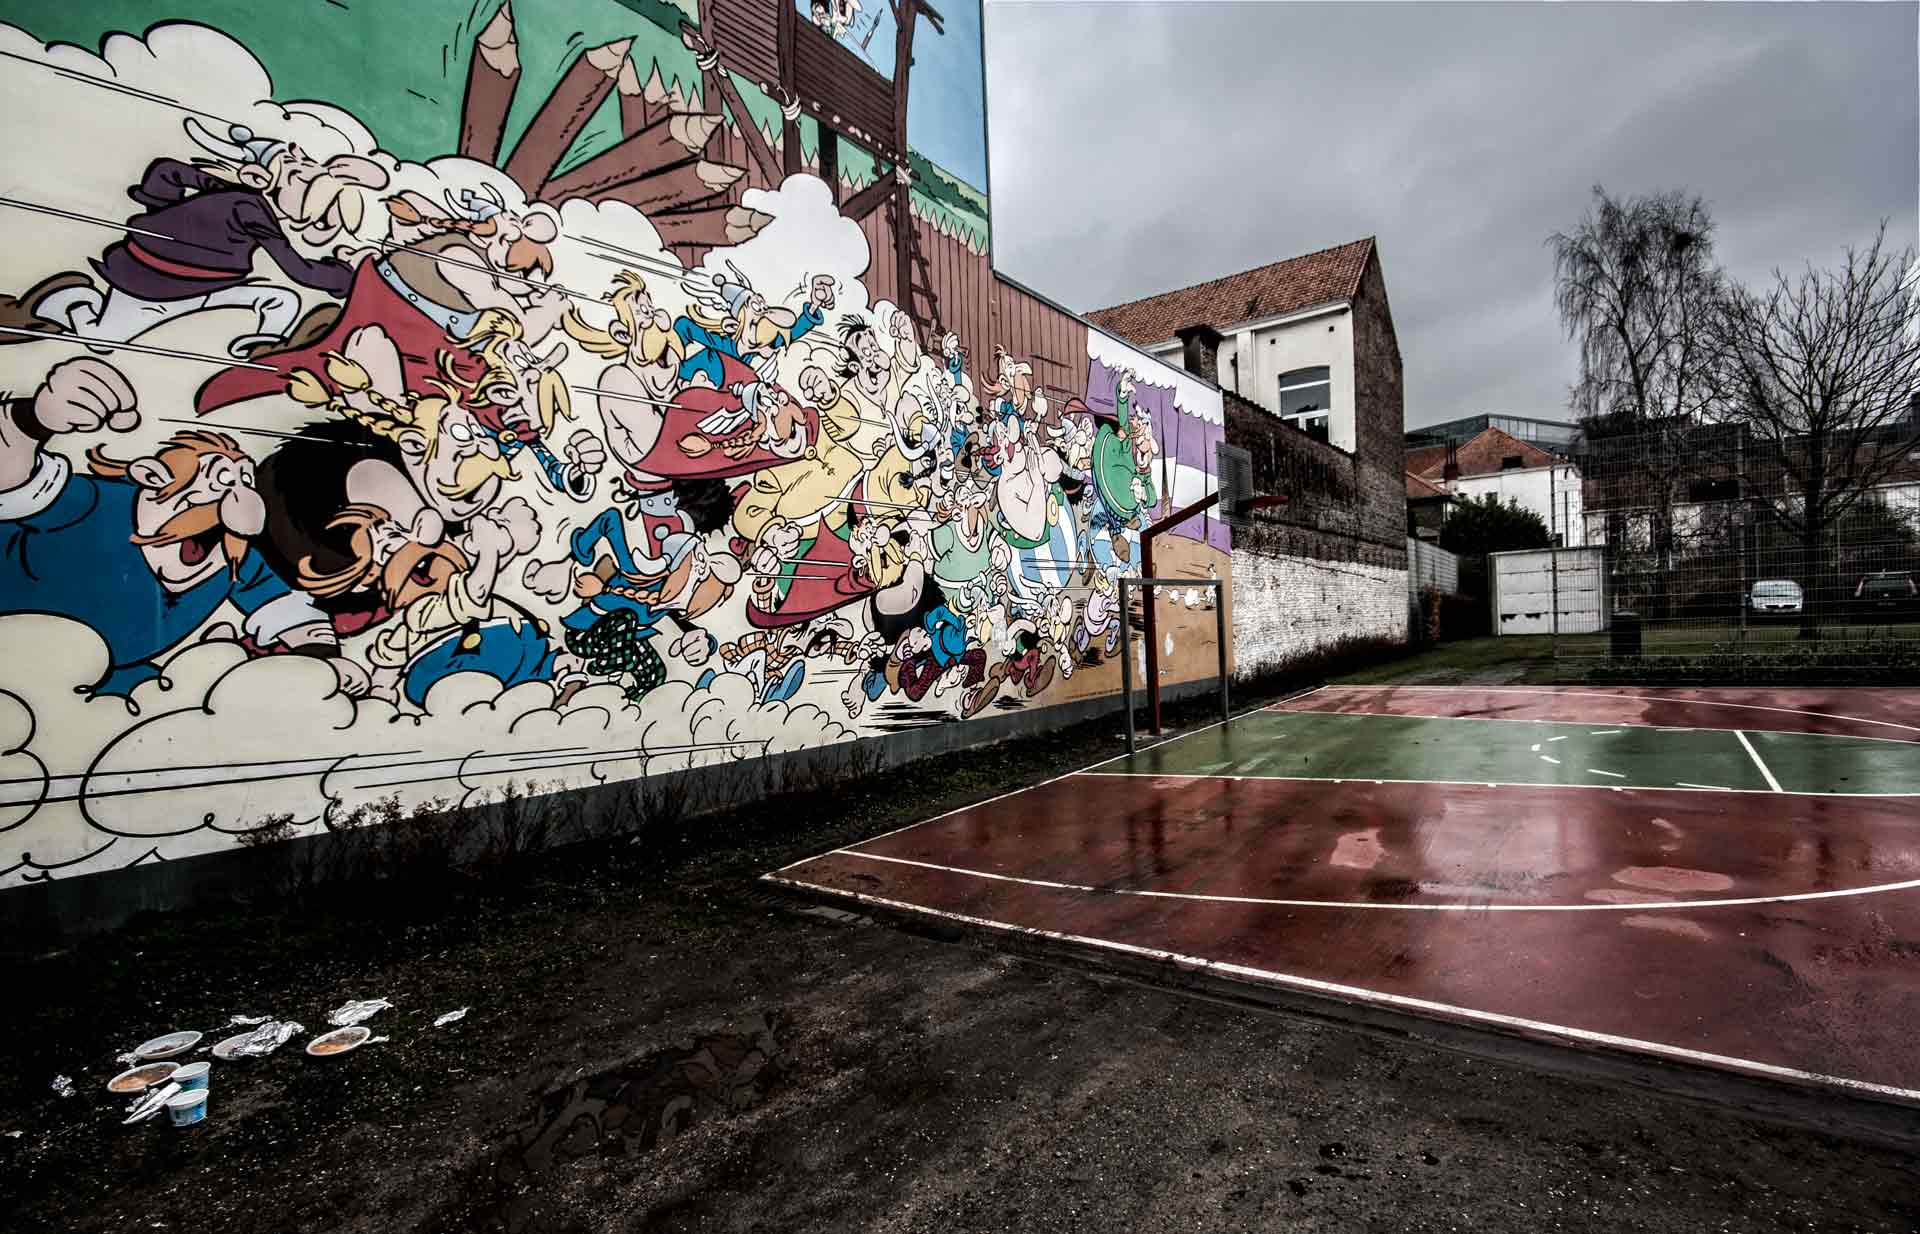 Bruxelles-playground-graffiti-urban-landscapes